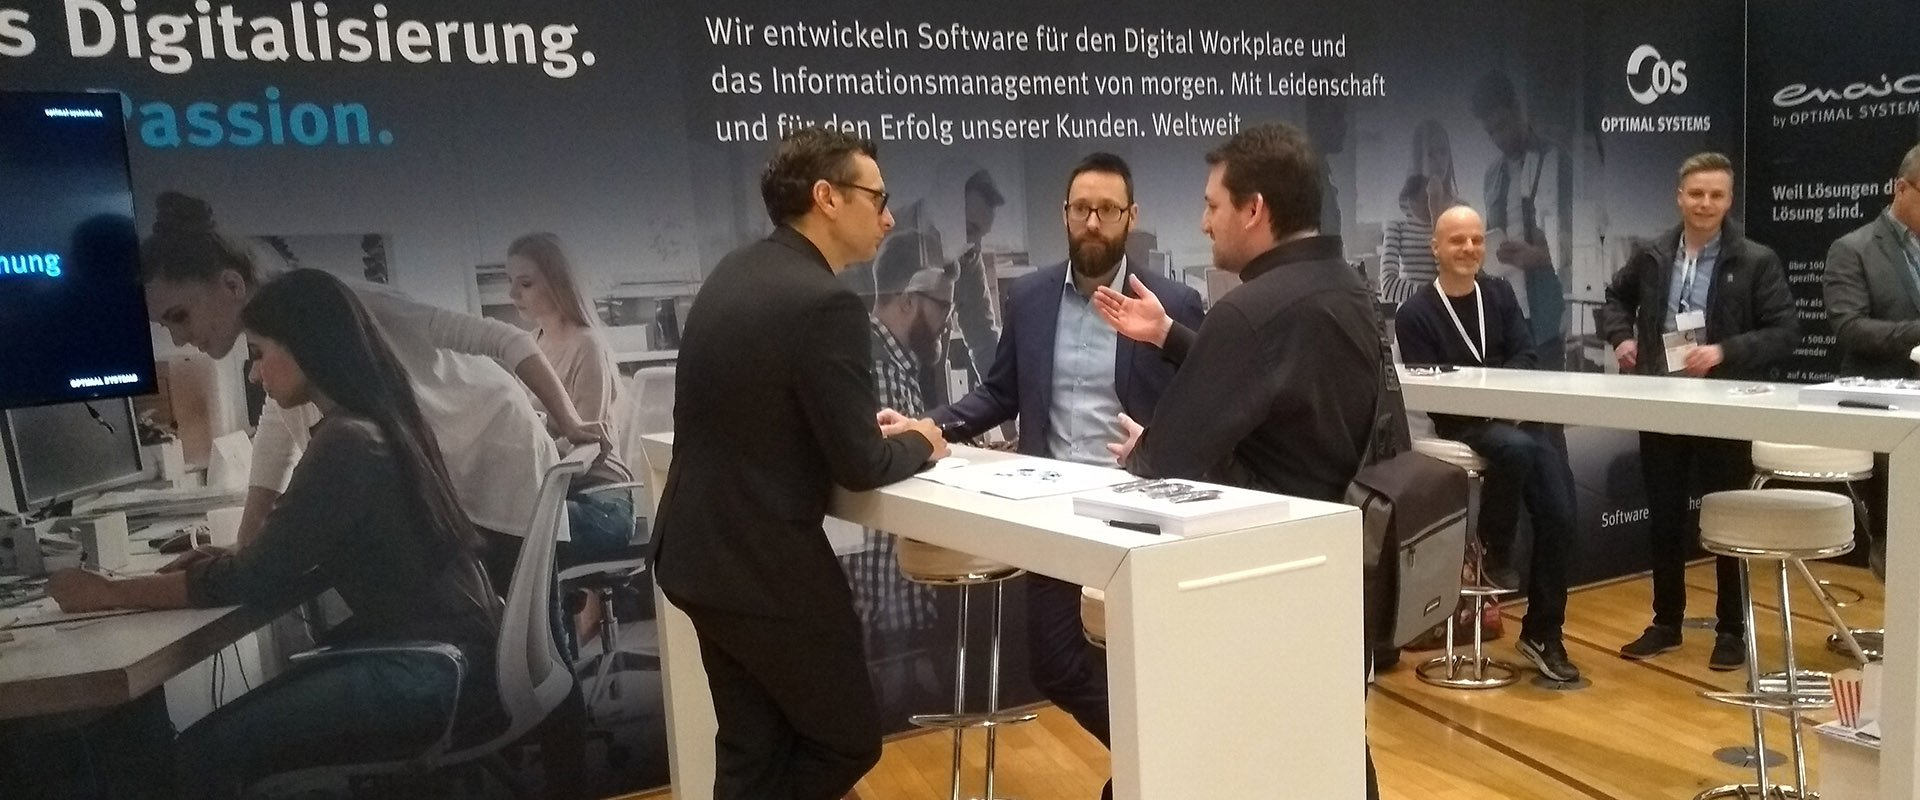 OPTIMAL SYSTEMS auf dem DIGITAL FUTUREcongress 2019